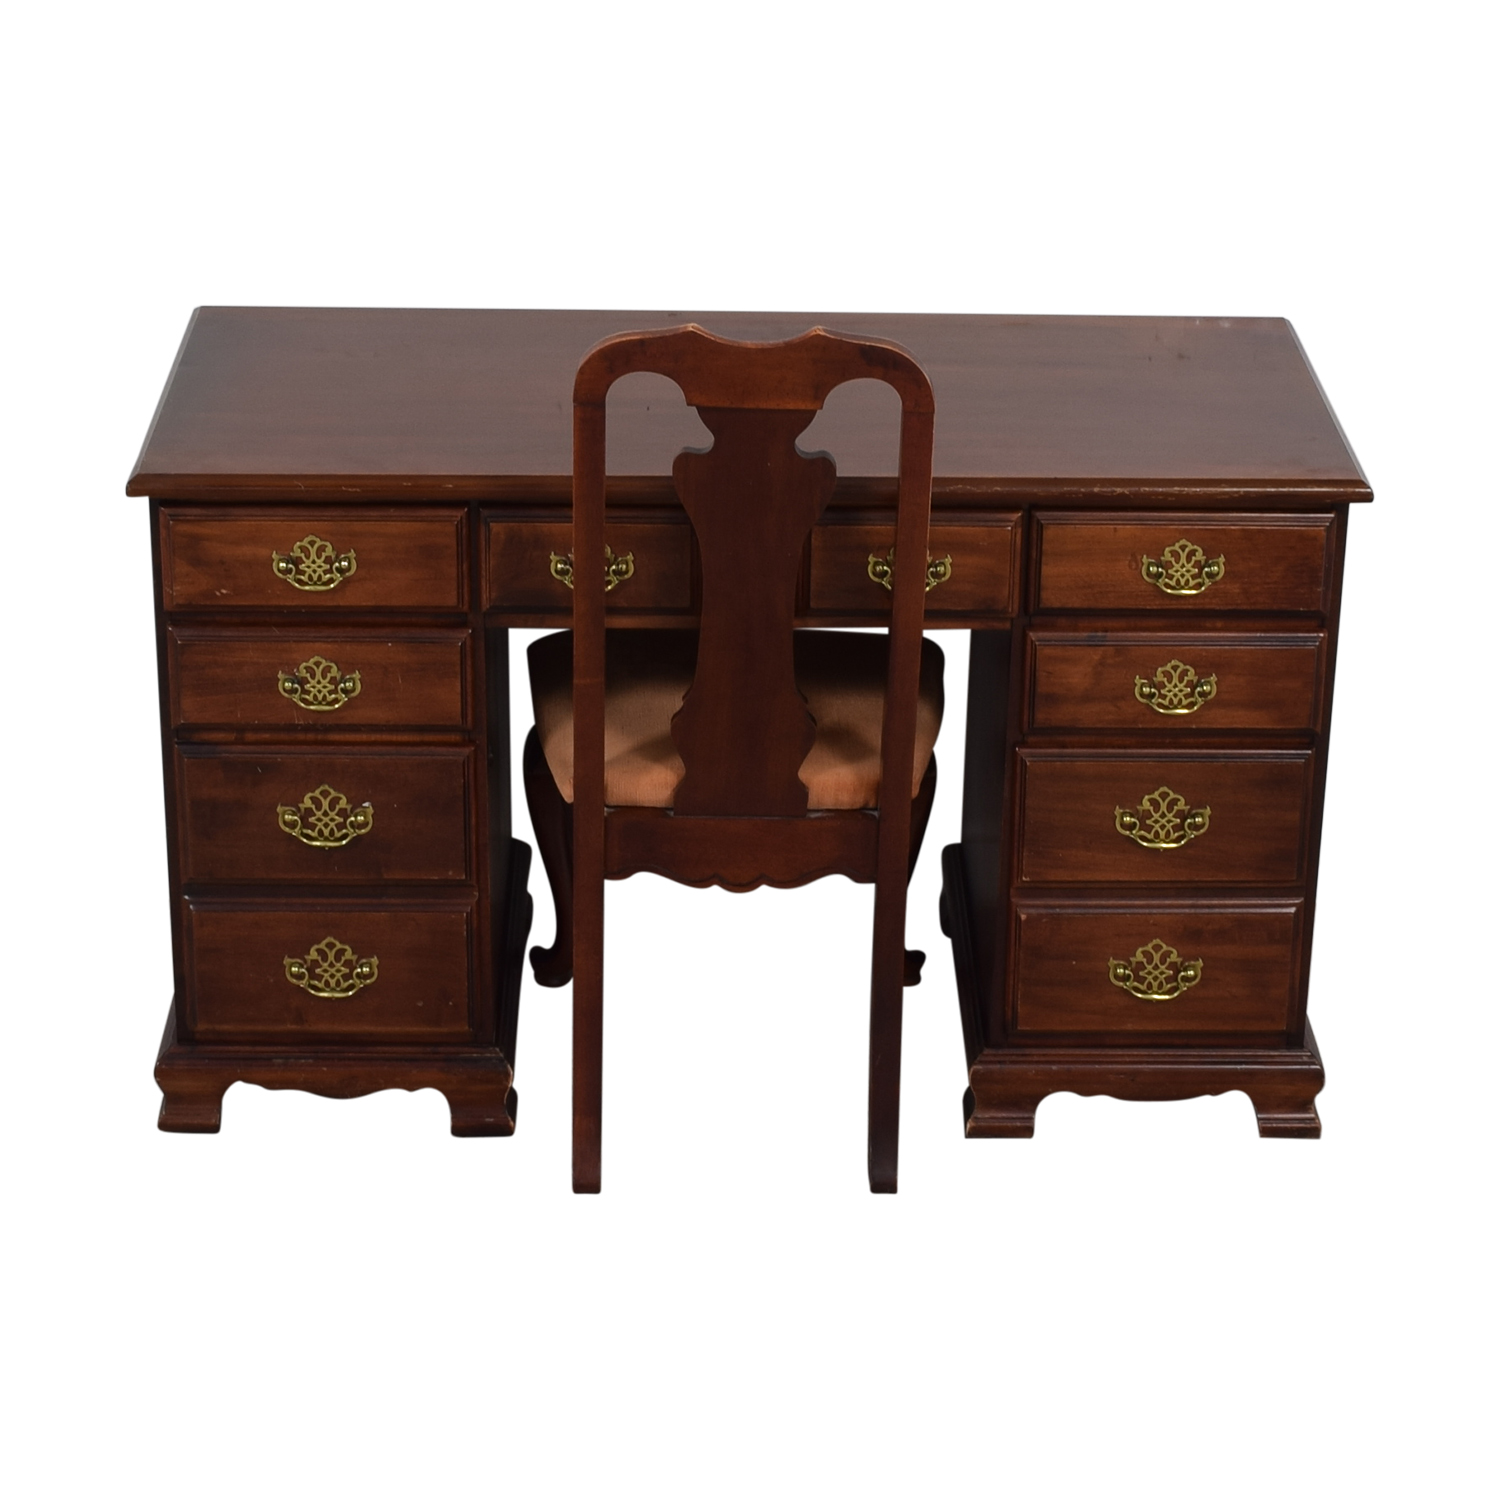 Riverside Furniture Riverside Furniture Ten-Drawer Desk With Chair on sale